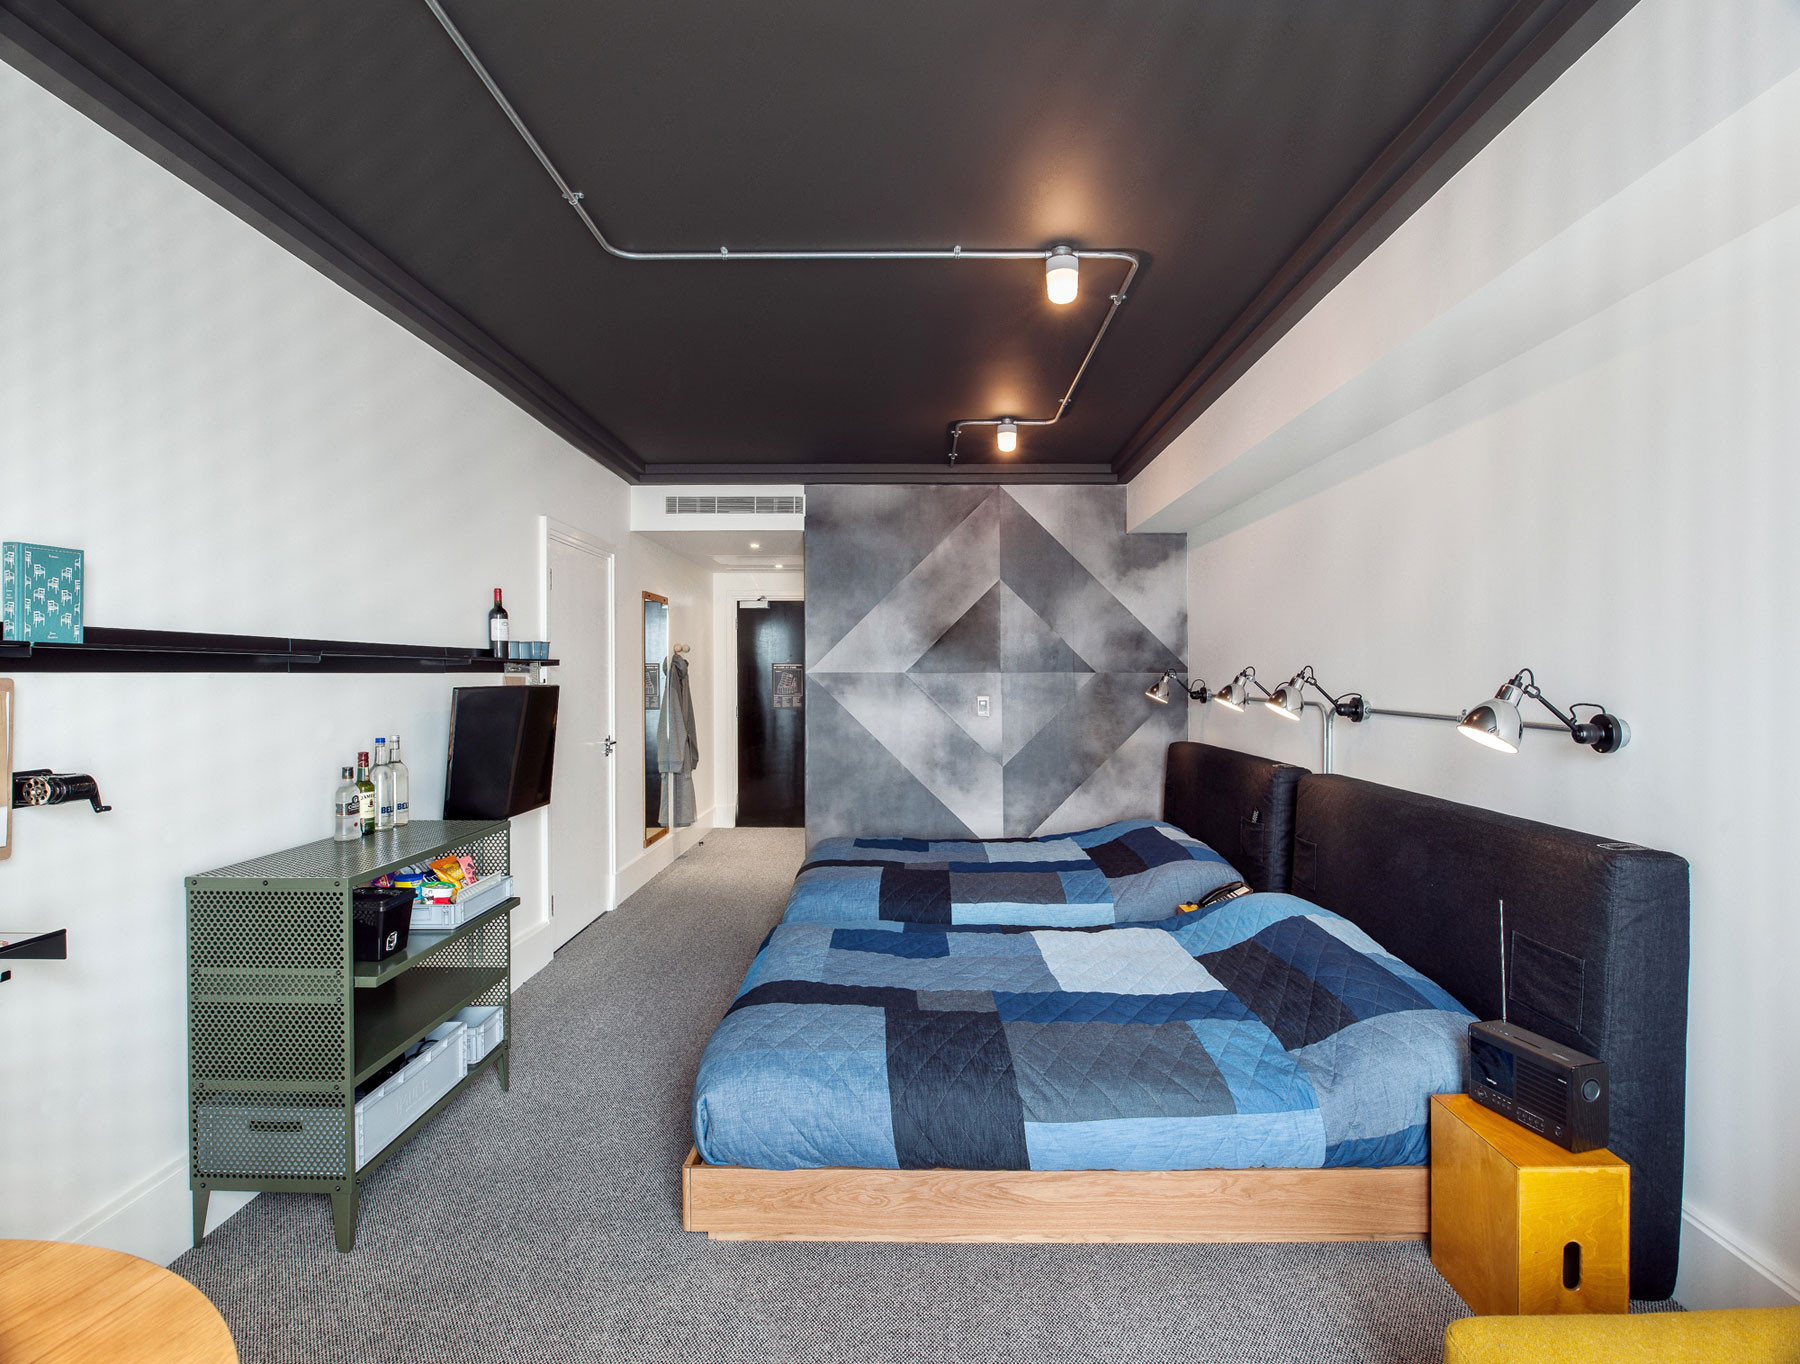 Ace Hotel London / Universal Design Studio, Courtesy of Ace Hotel